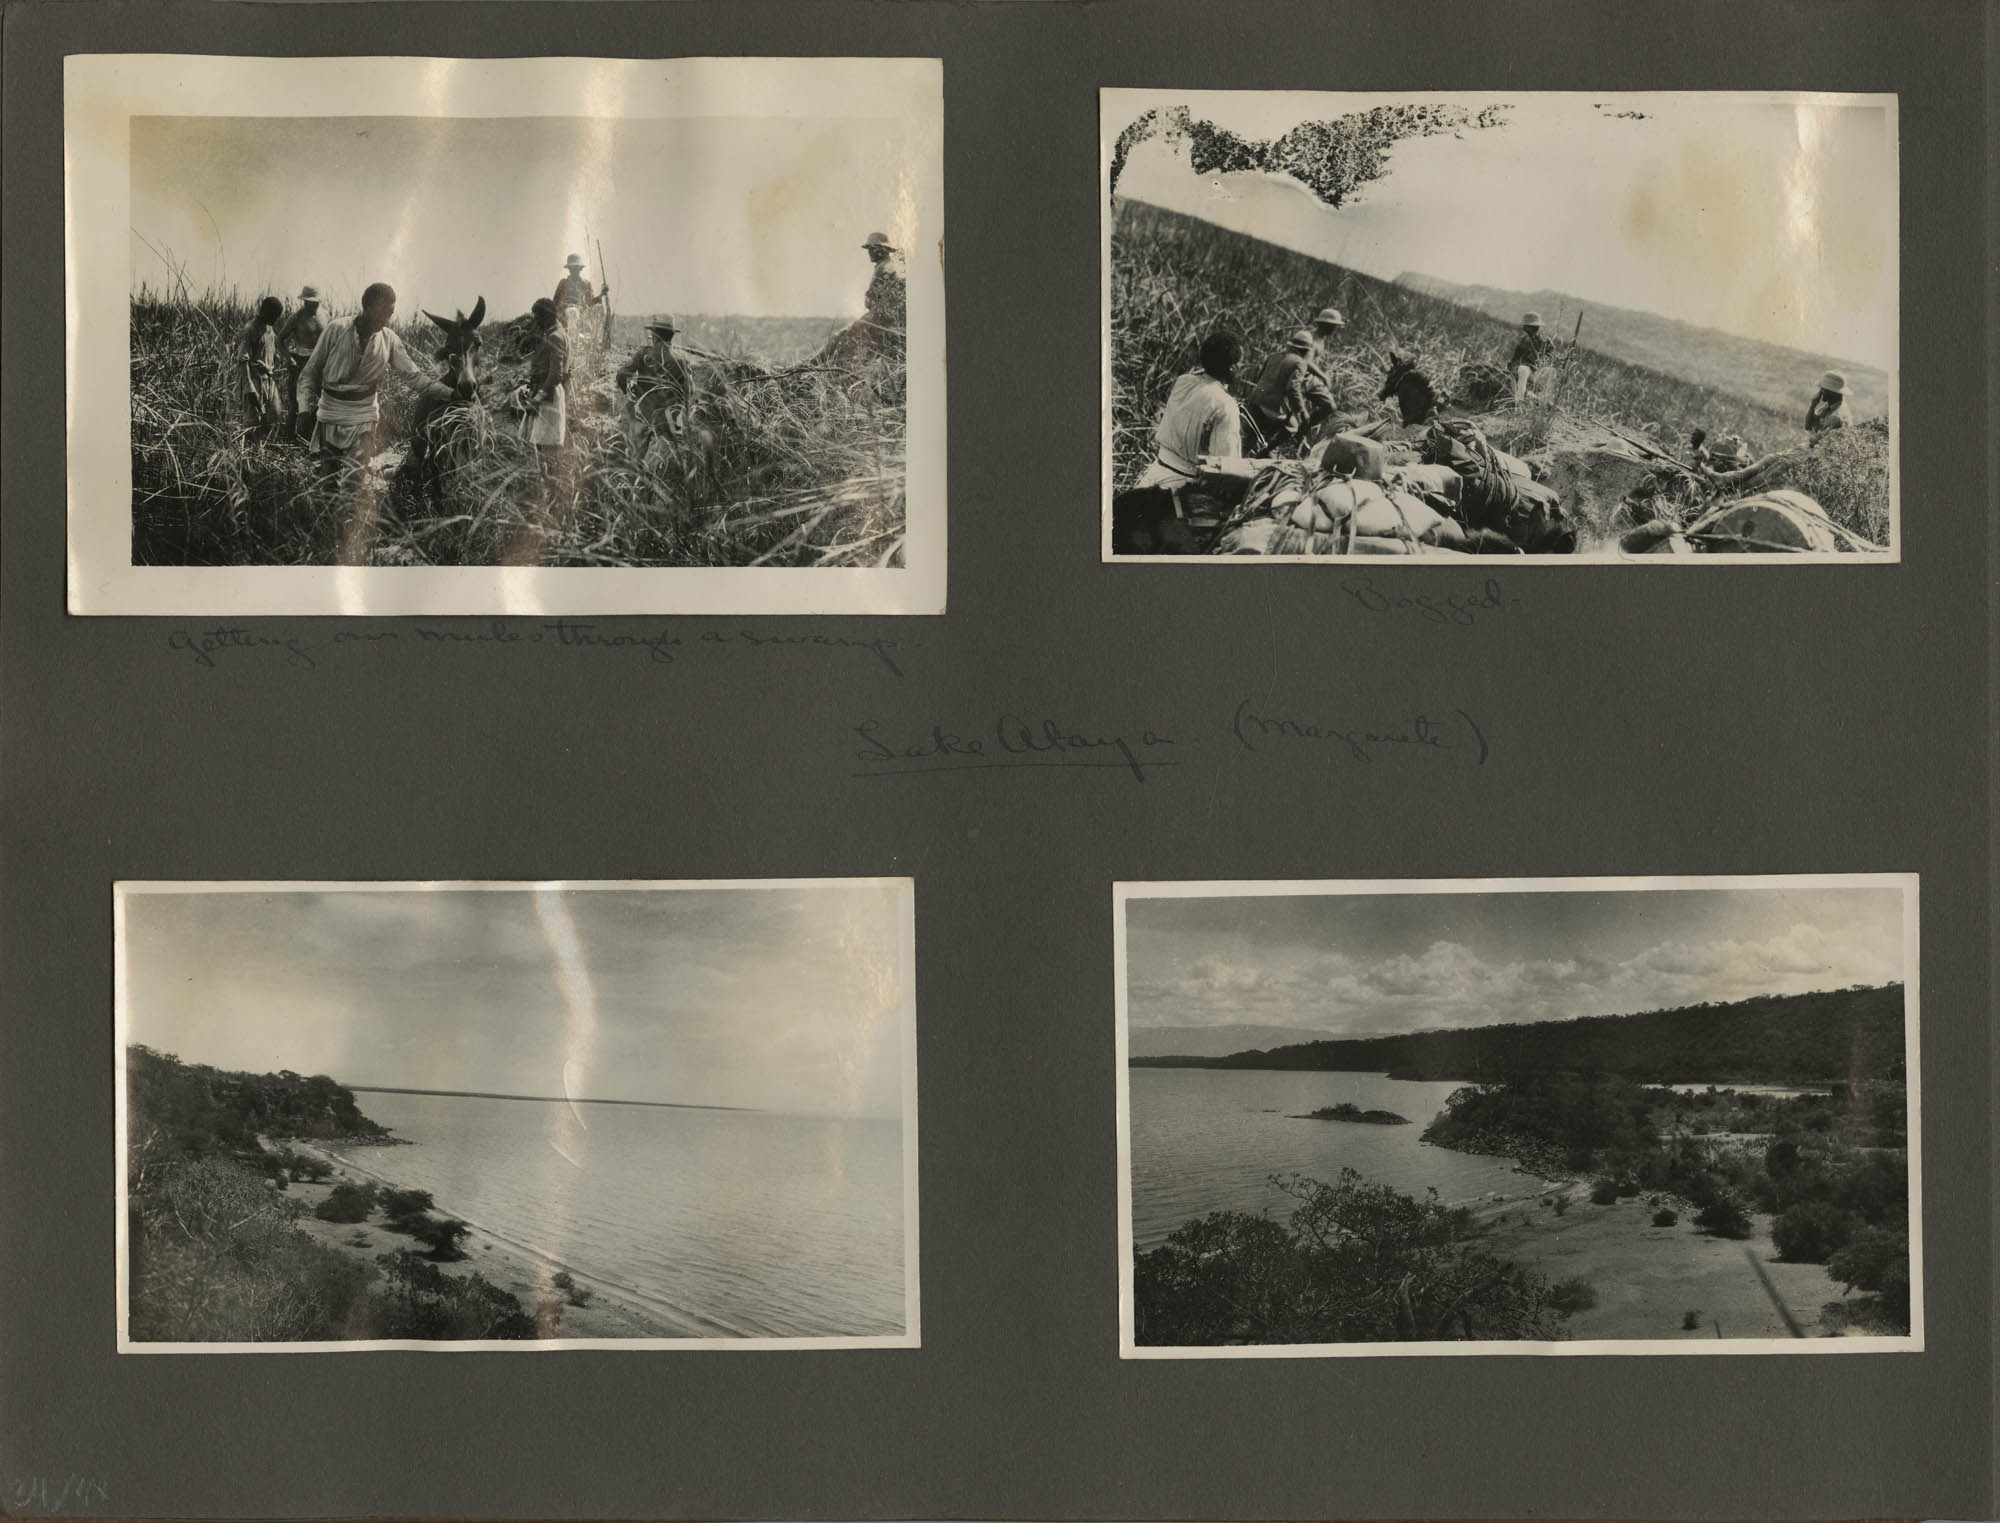 Abyssinia Expedition Photograph Album, 1928, Page 34